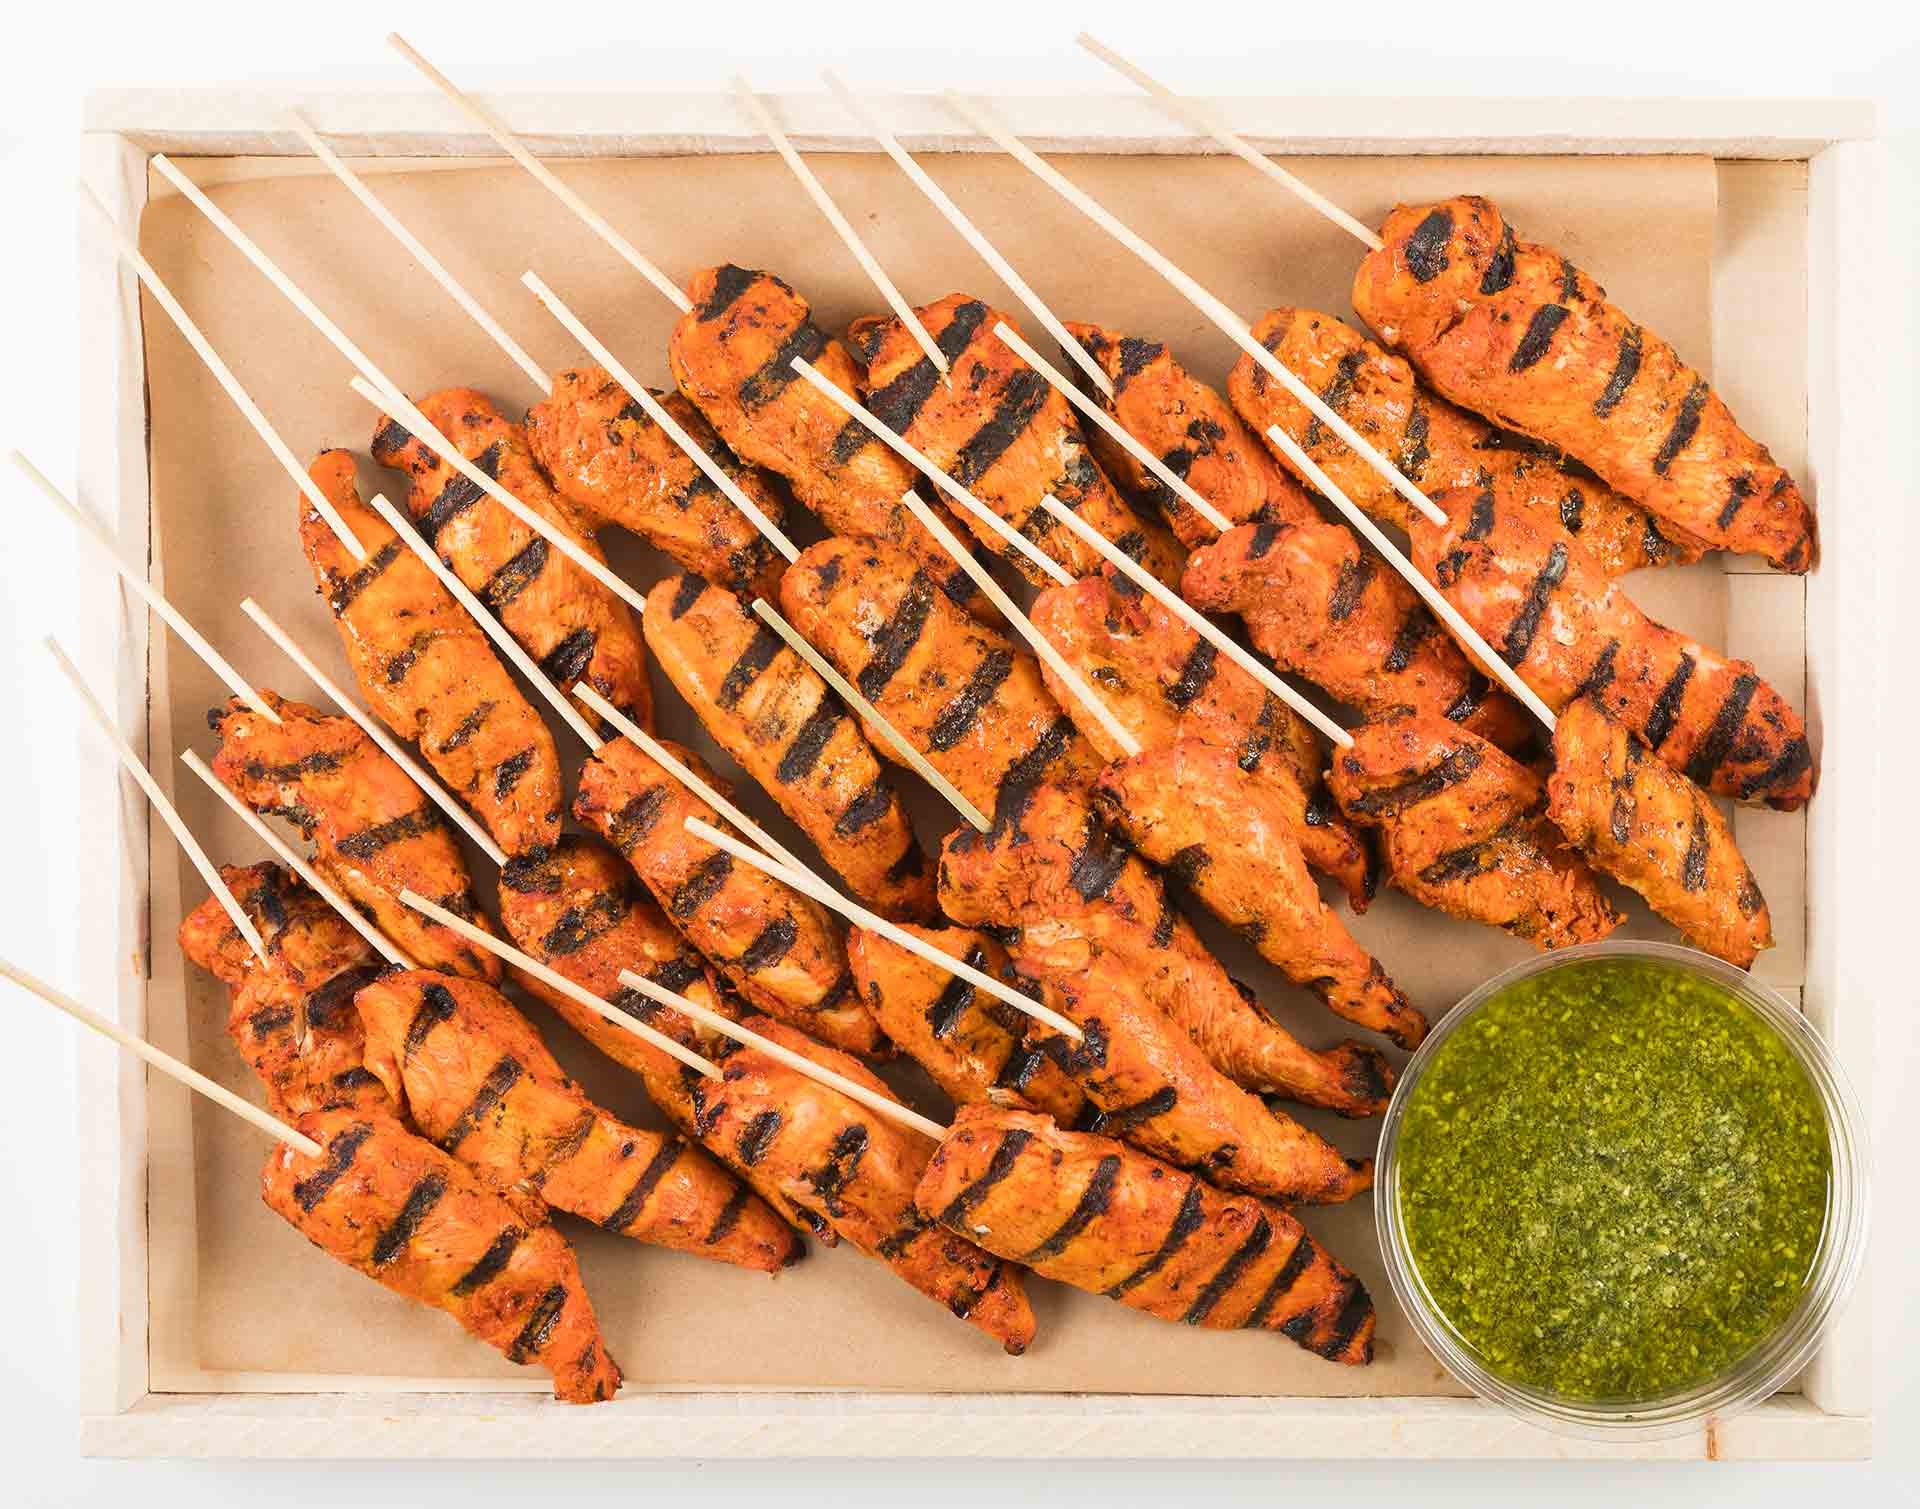 Achiote Chicken Skewer Platter